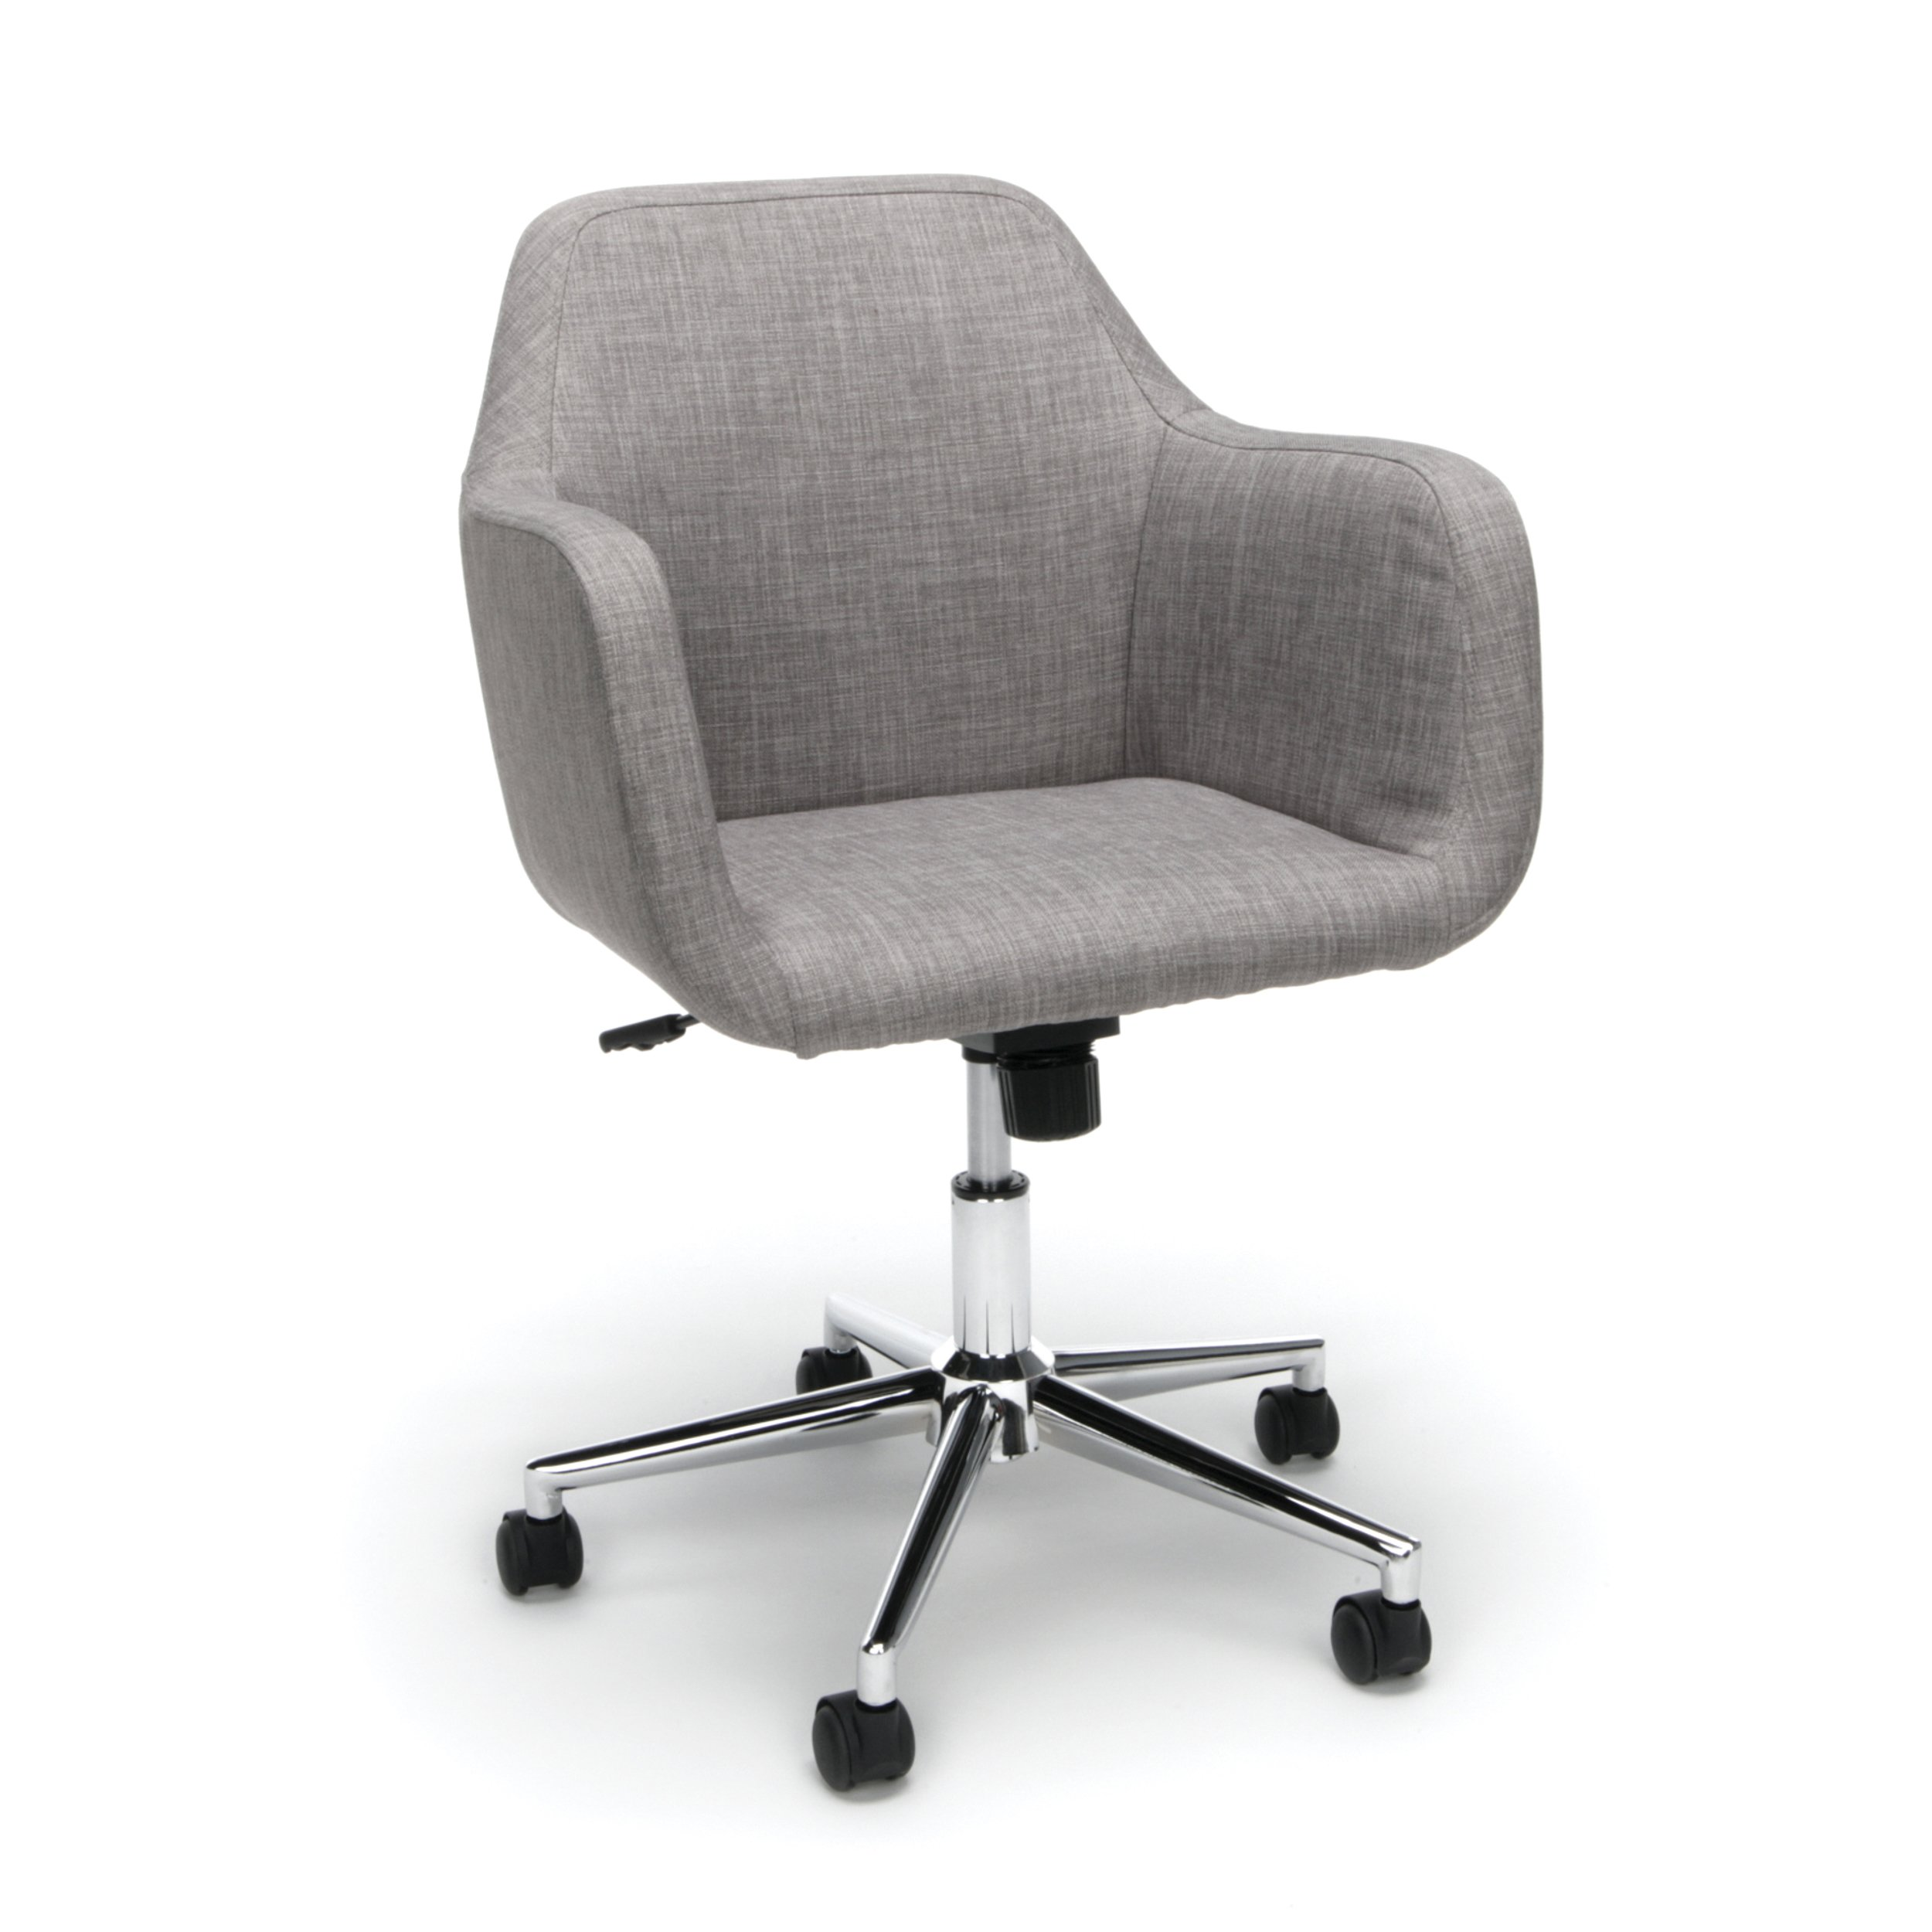 Essentials ESS-2085-GRY Upholstered Home Office Chair - Ergonomic Desk Chair with Arms for Conference Room Or Office, Gray